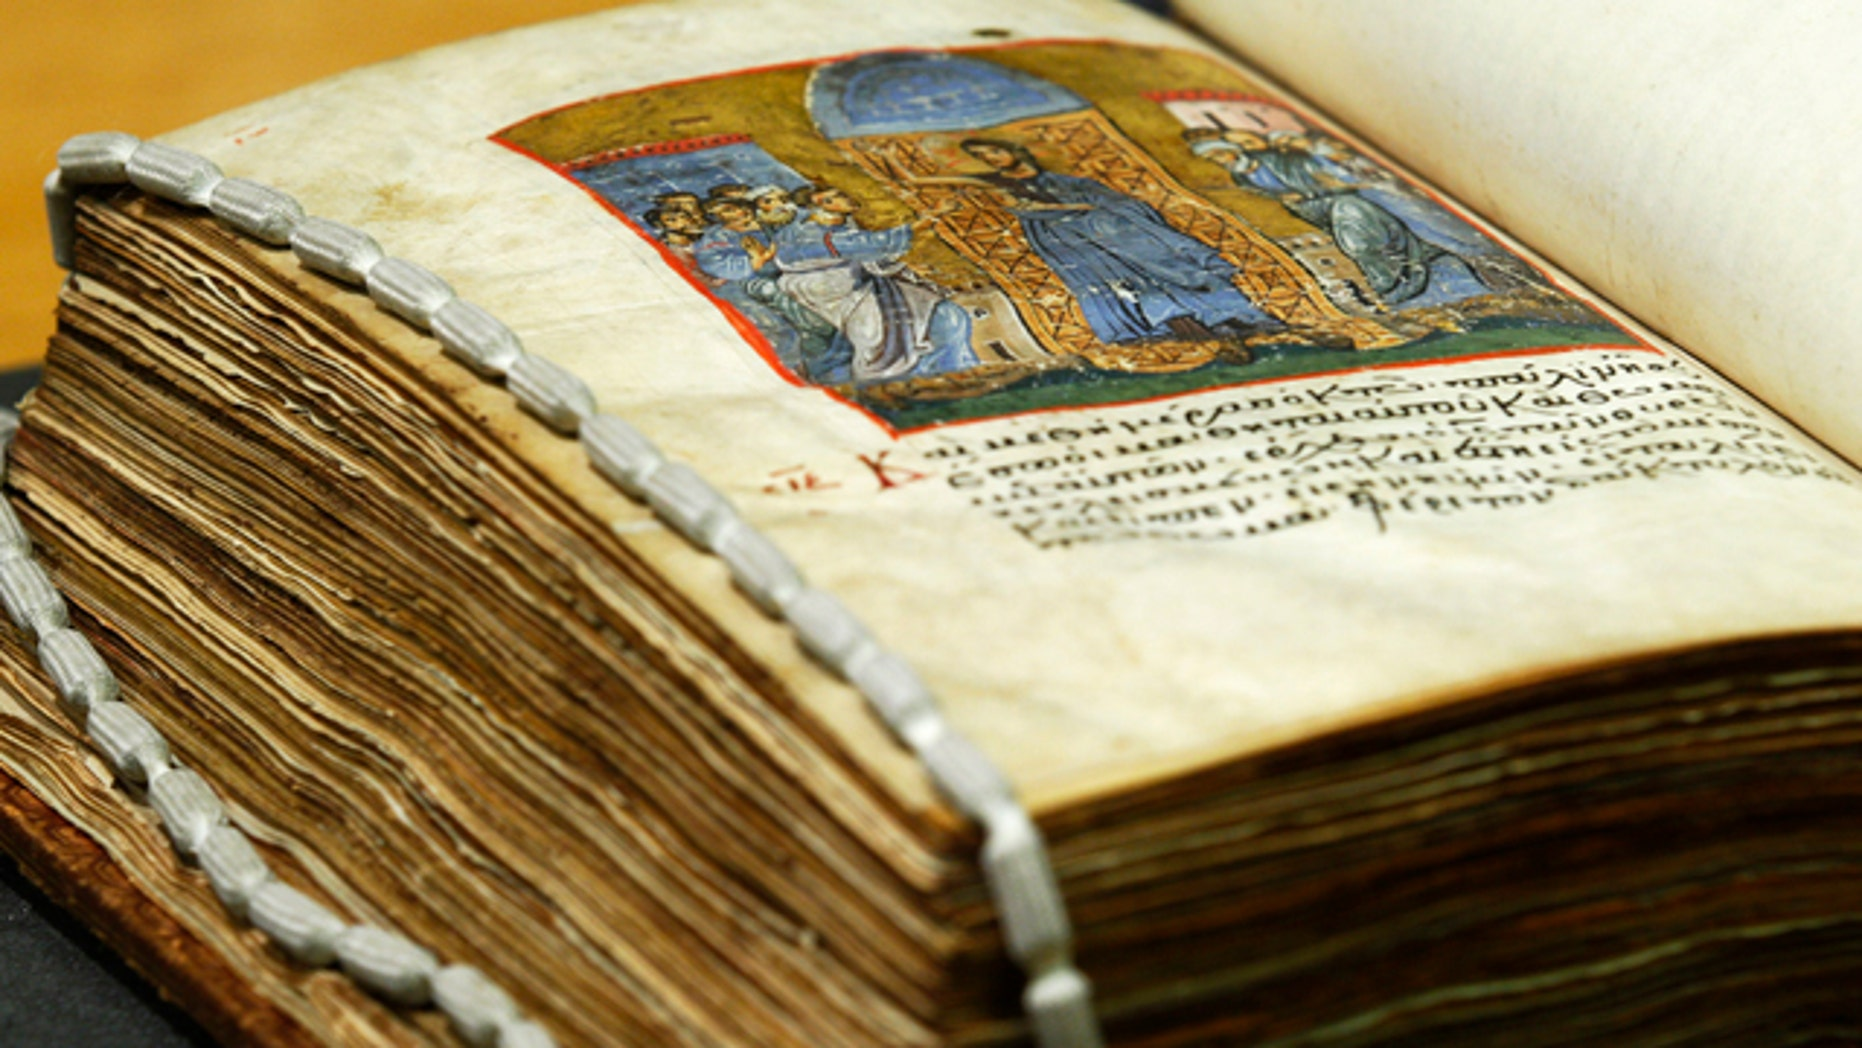 A late 12th century illuminated gospels manuscript in Greek, which has been digitized, is seen at the British Library in London, Friday, Sept. 24, 2010. British Library has digitized over a quarter of its Greek manuscripts (284 volumes) for the first time and made them freely available online.